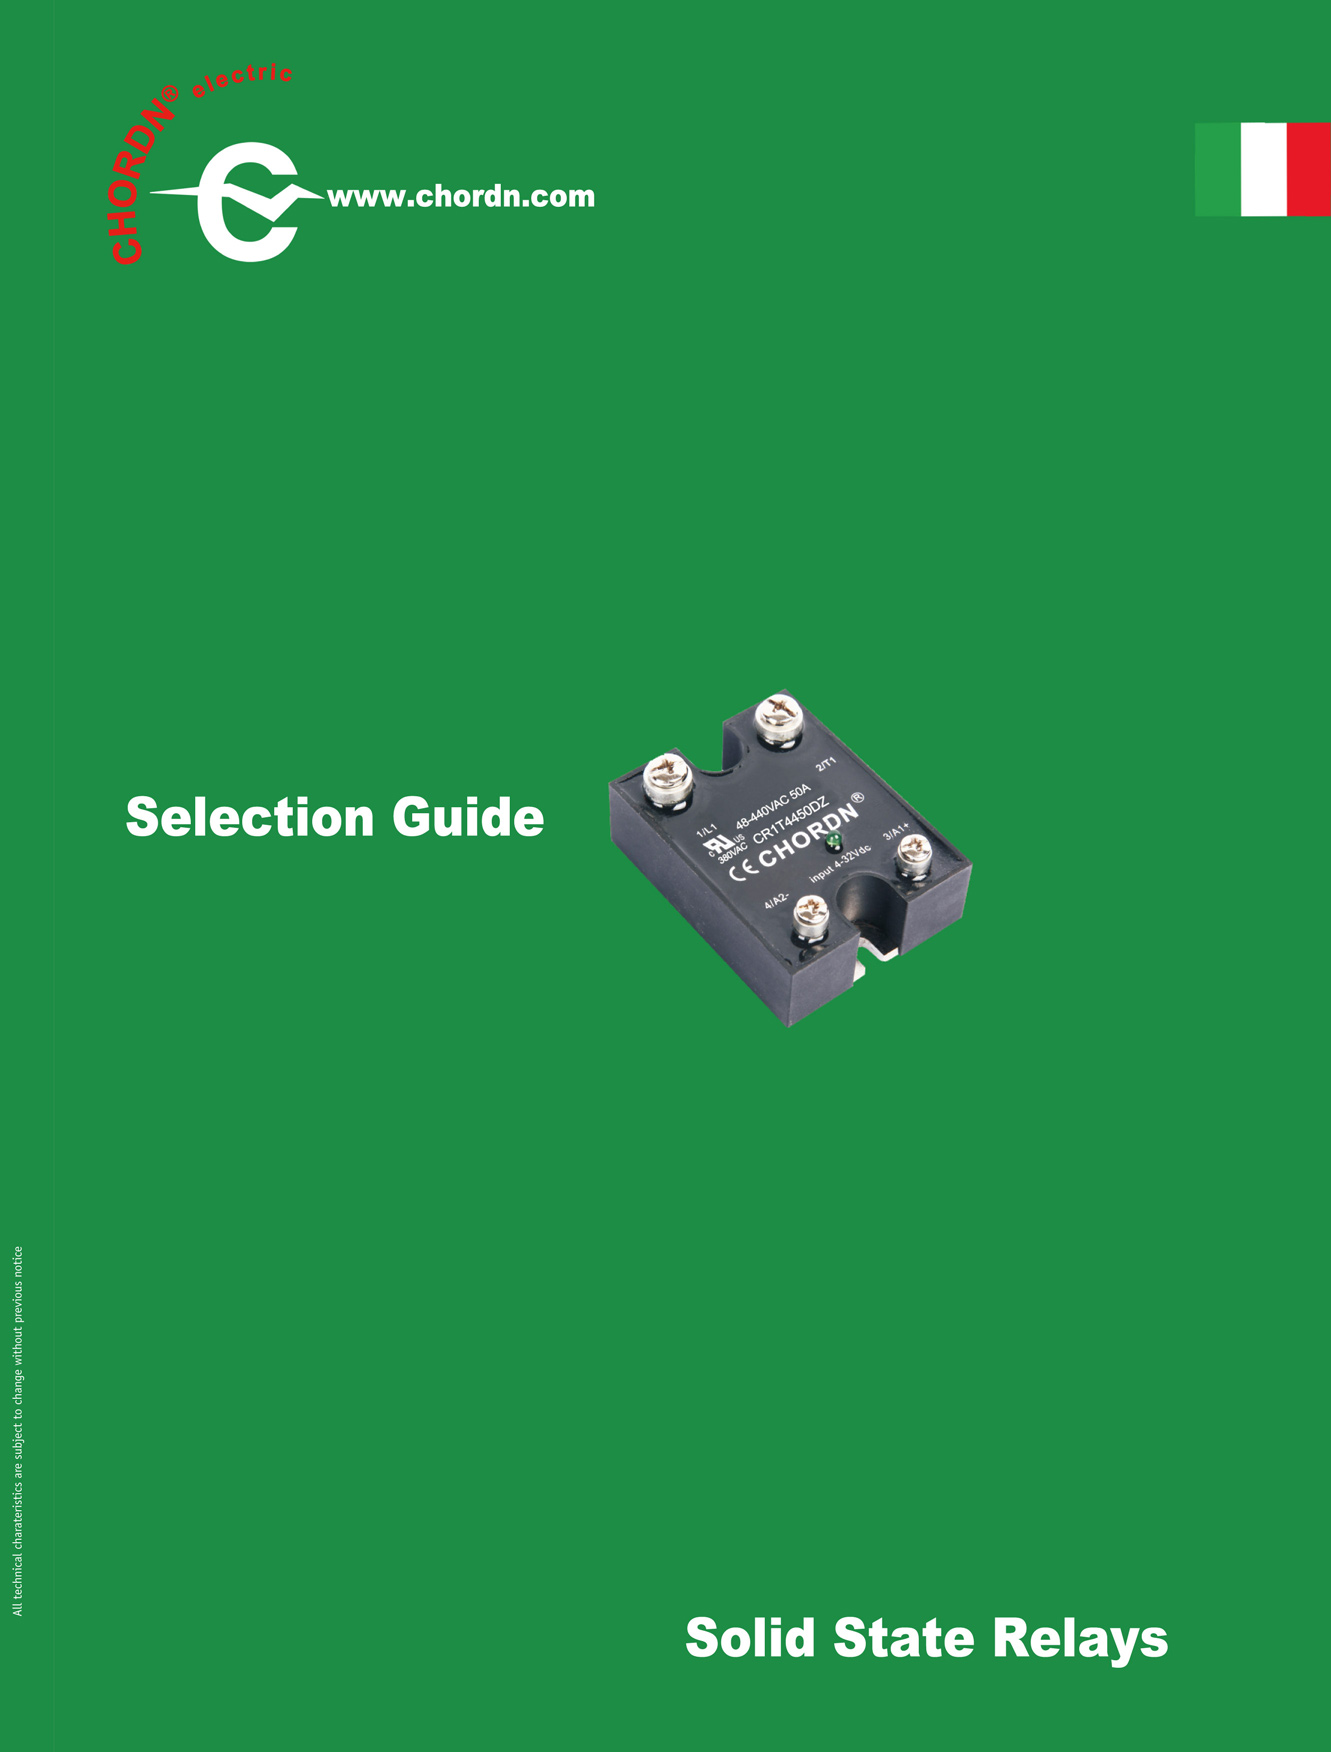 Faq Frequently Asked Questions Chordn Solid State Relay Celduc Technical Library Power Protection Products Relays